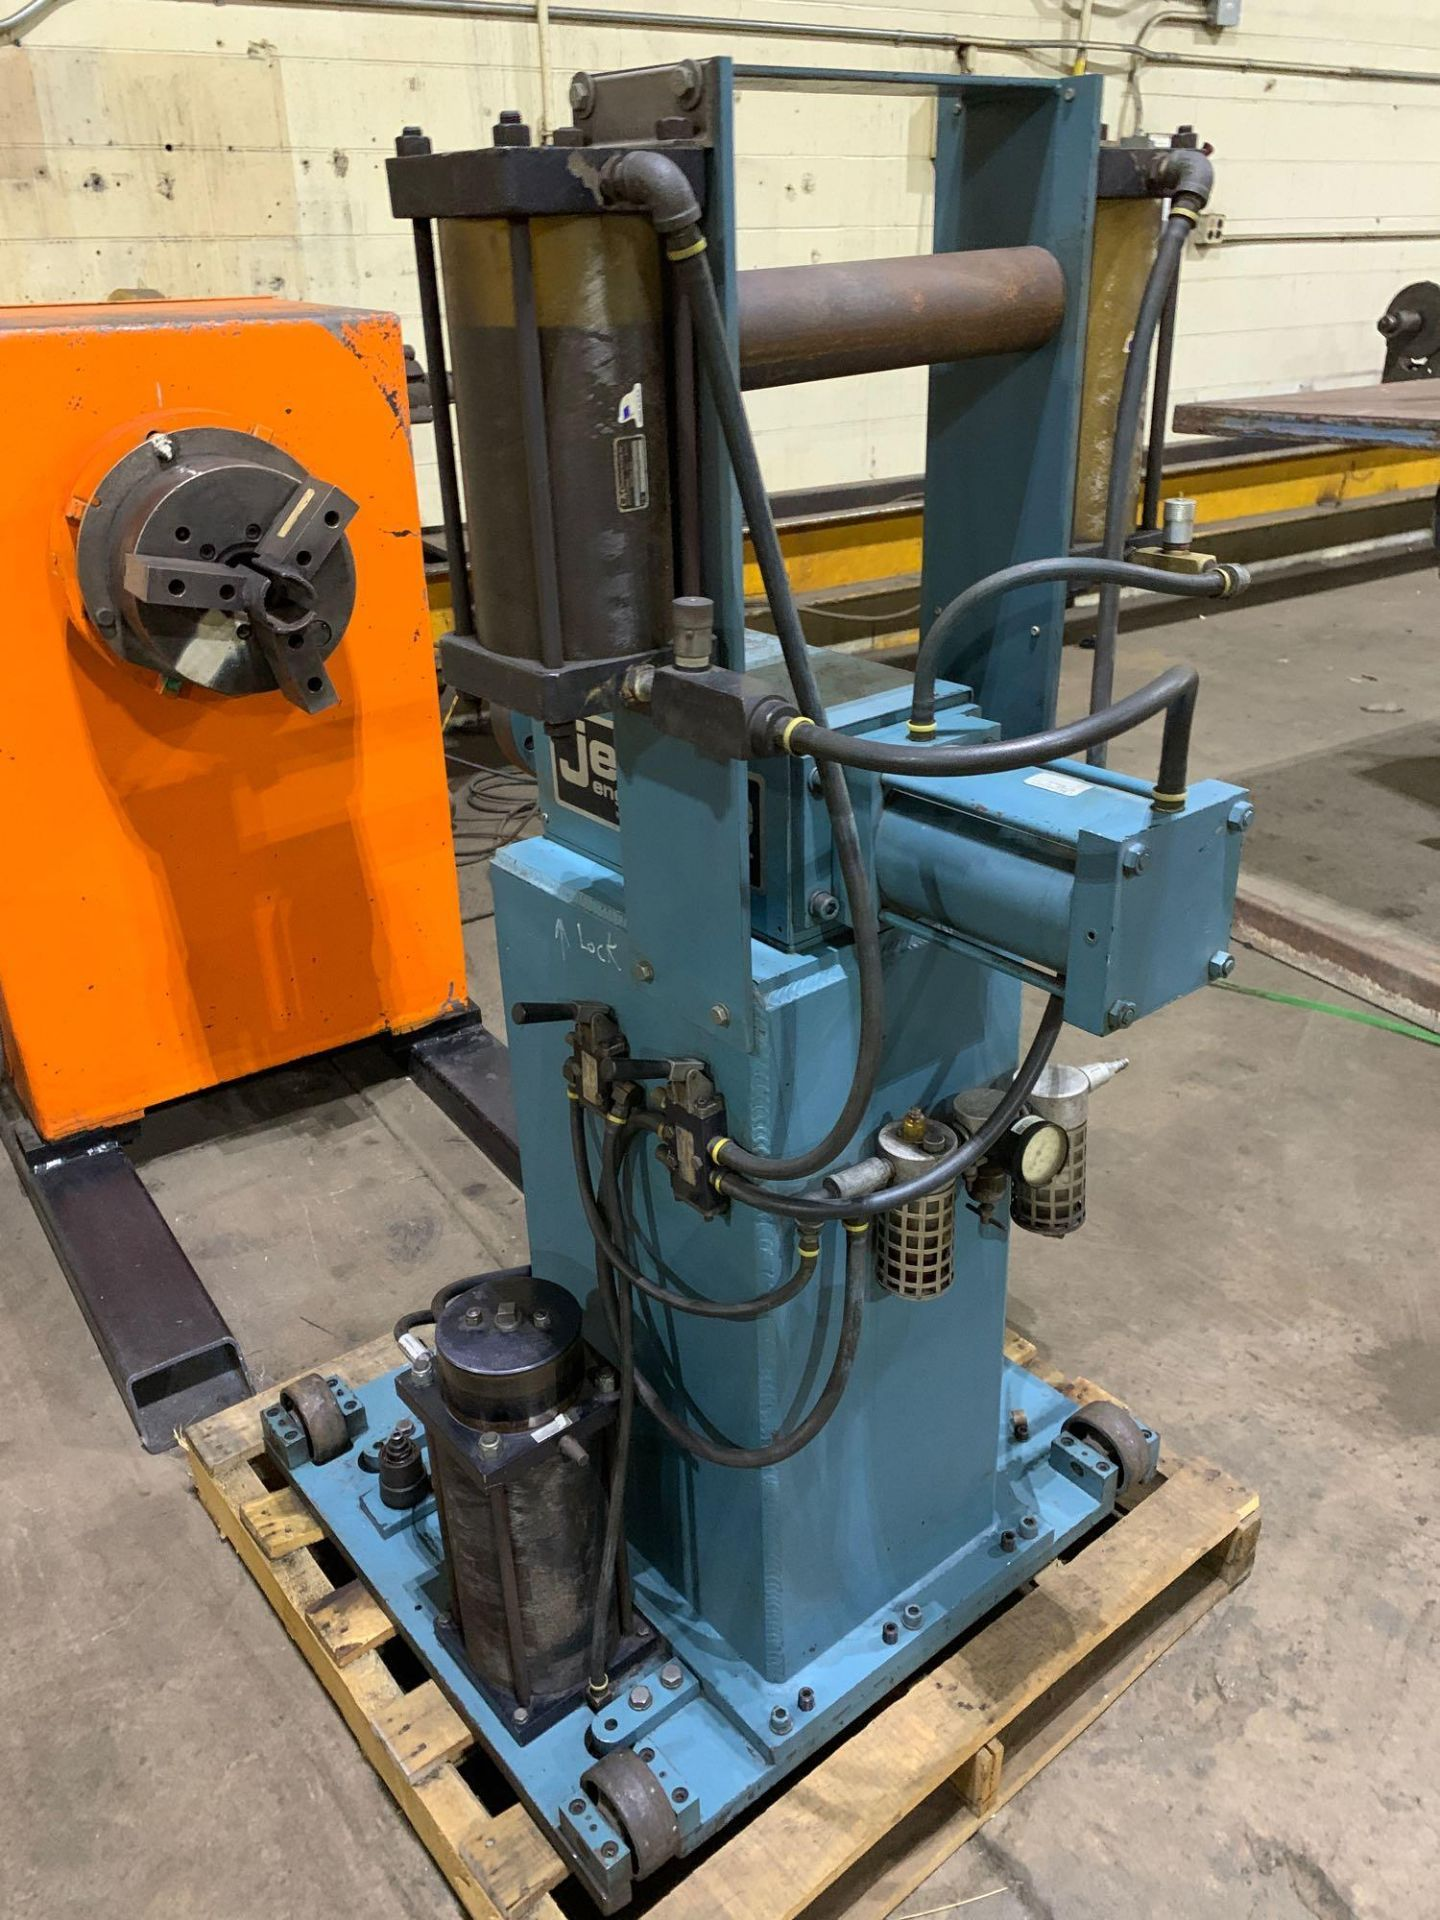 Jetline Welding Positioner Model CU5-216 Serial Number: 07625 Pipe Weld Positioner with Tail Stock I - Image 7 of 15